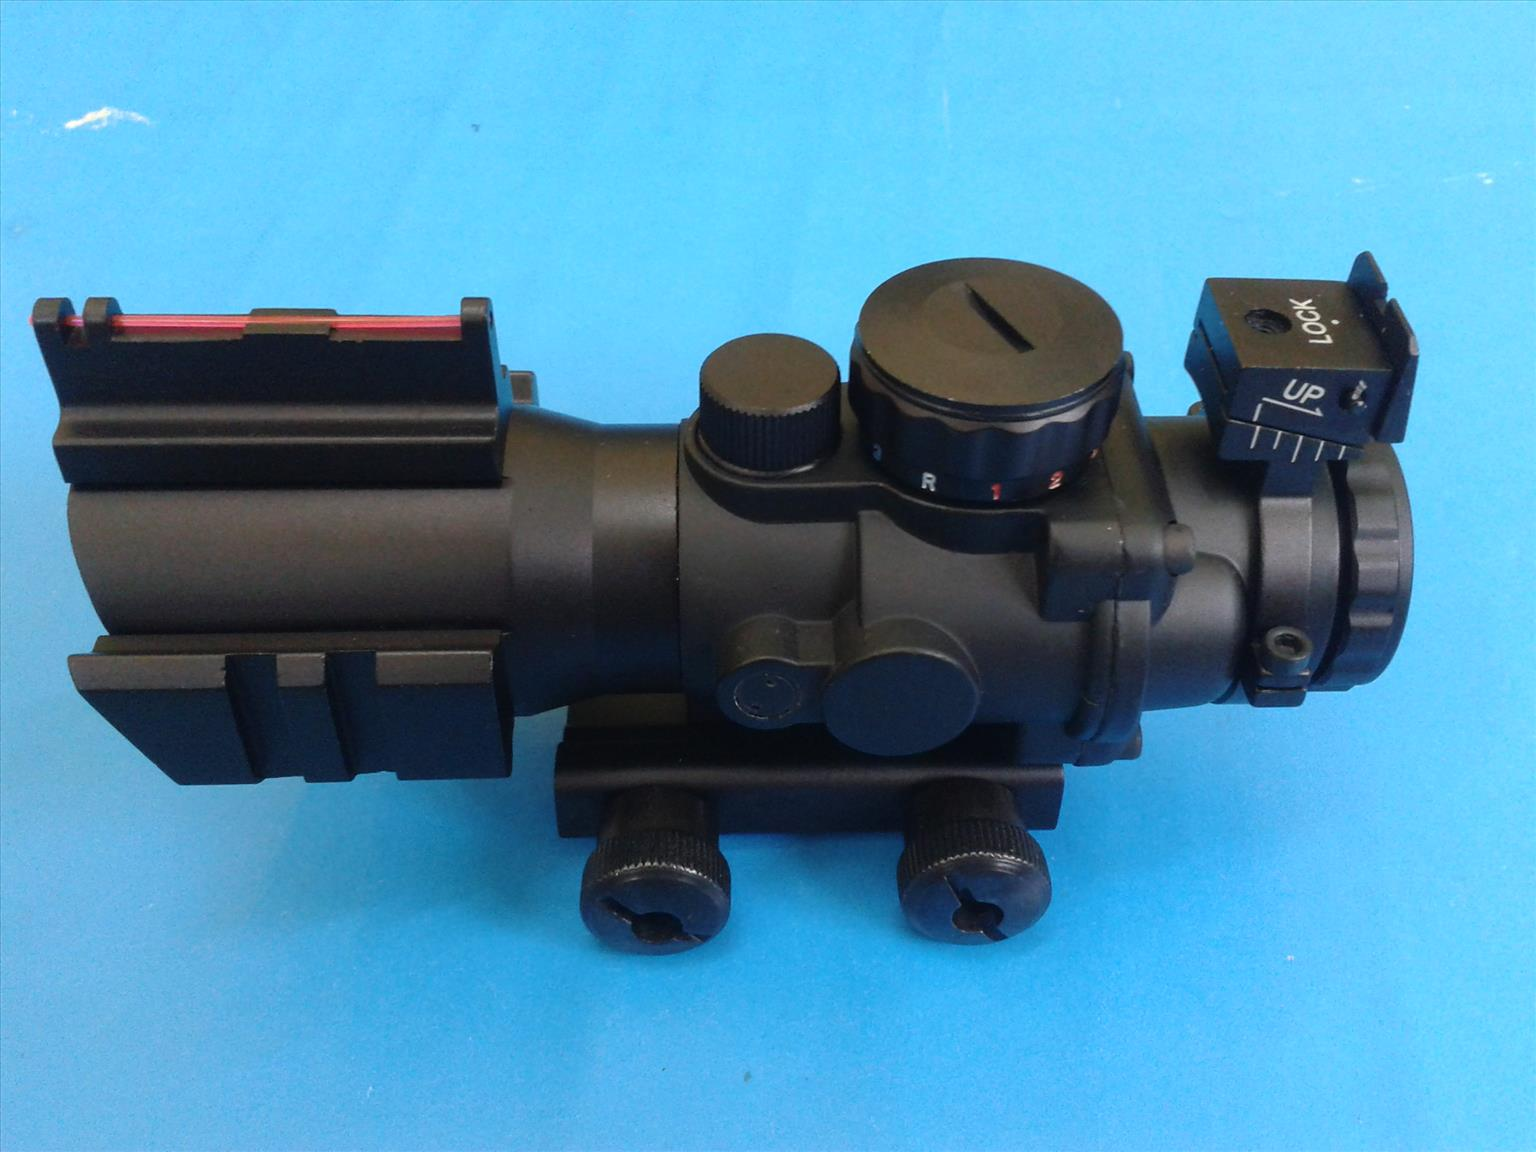 AIRSOFT PAINTBALL 4x32mm Tactical Compact Scope c/w Optic Sight